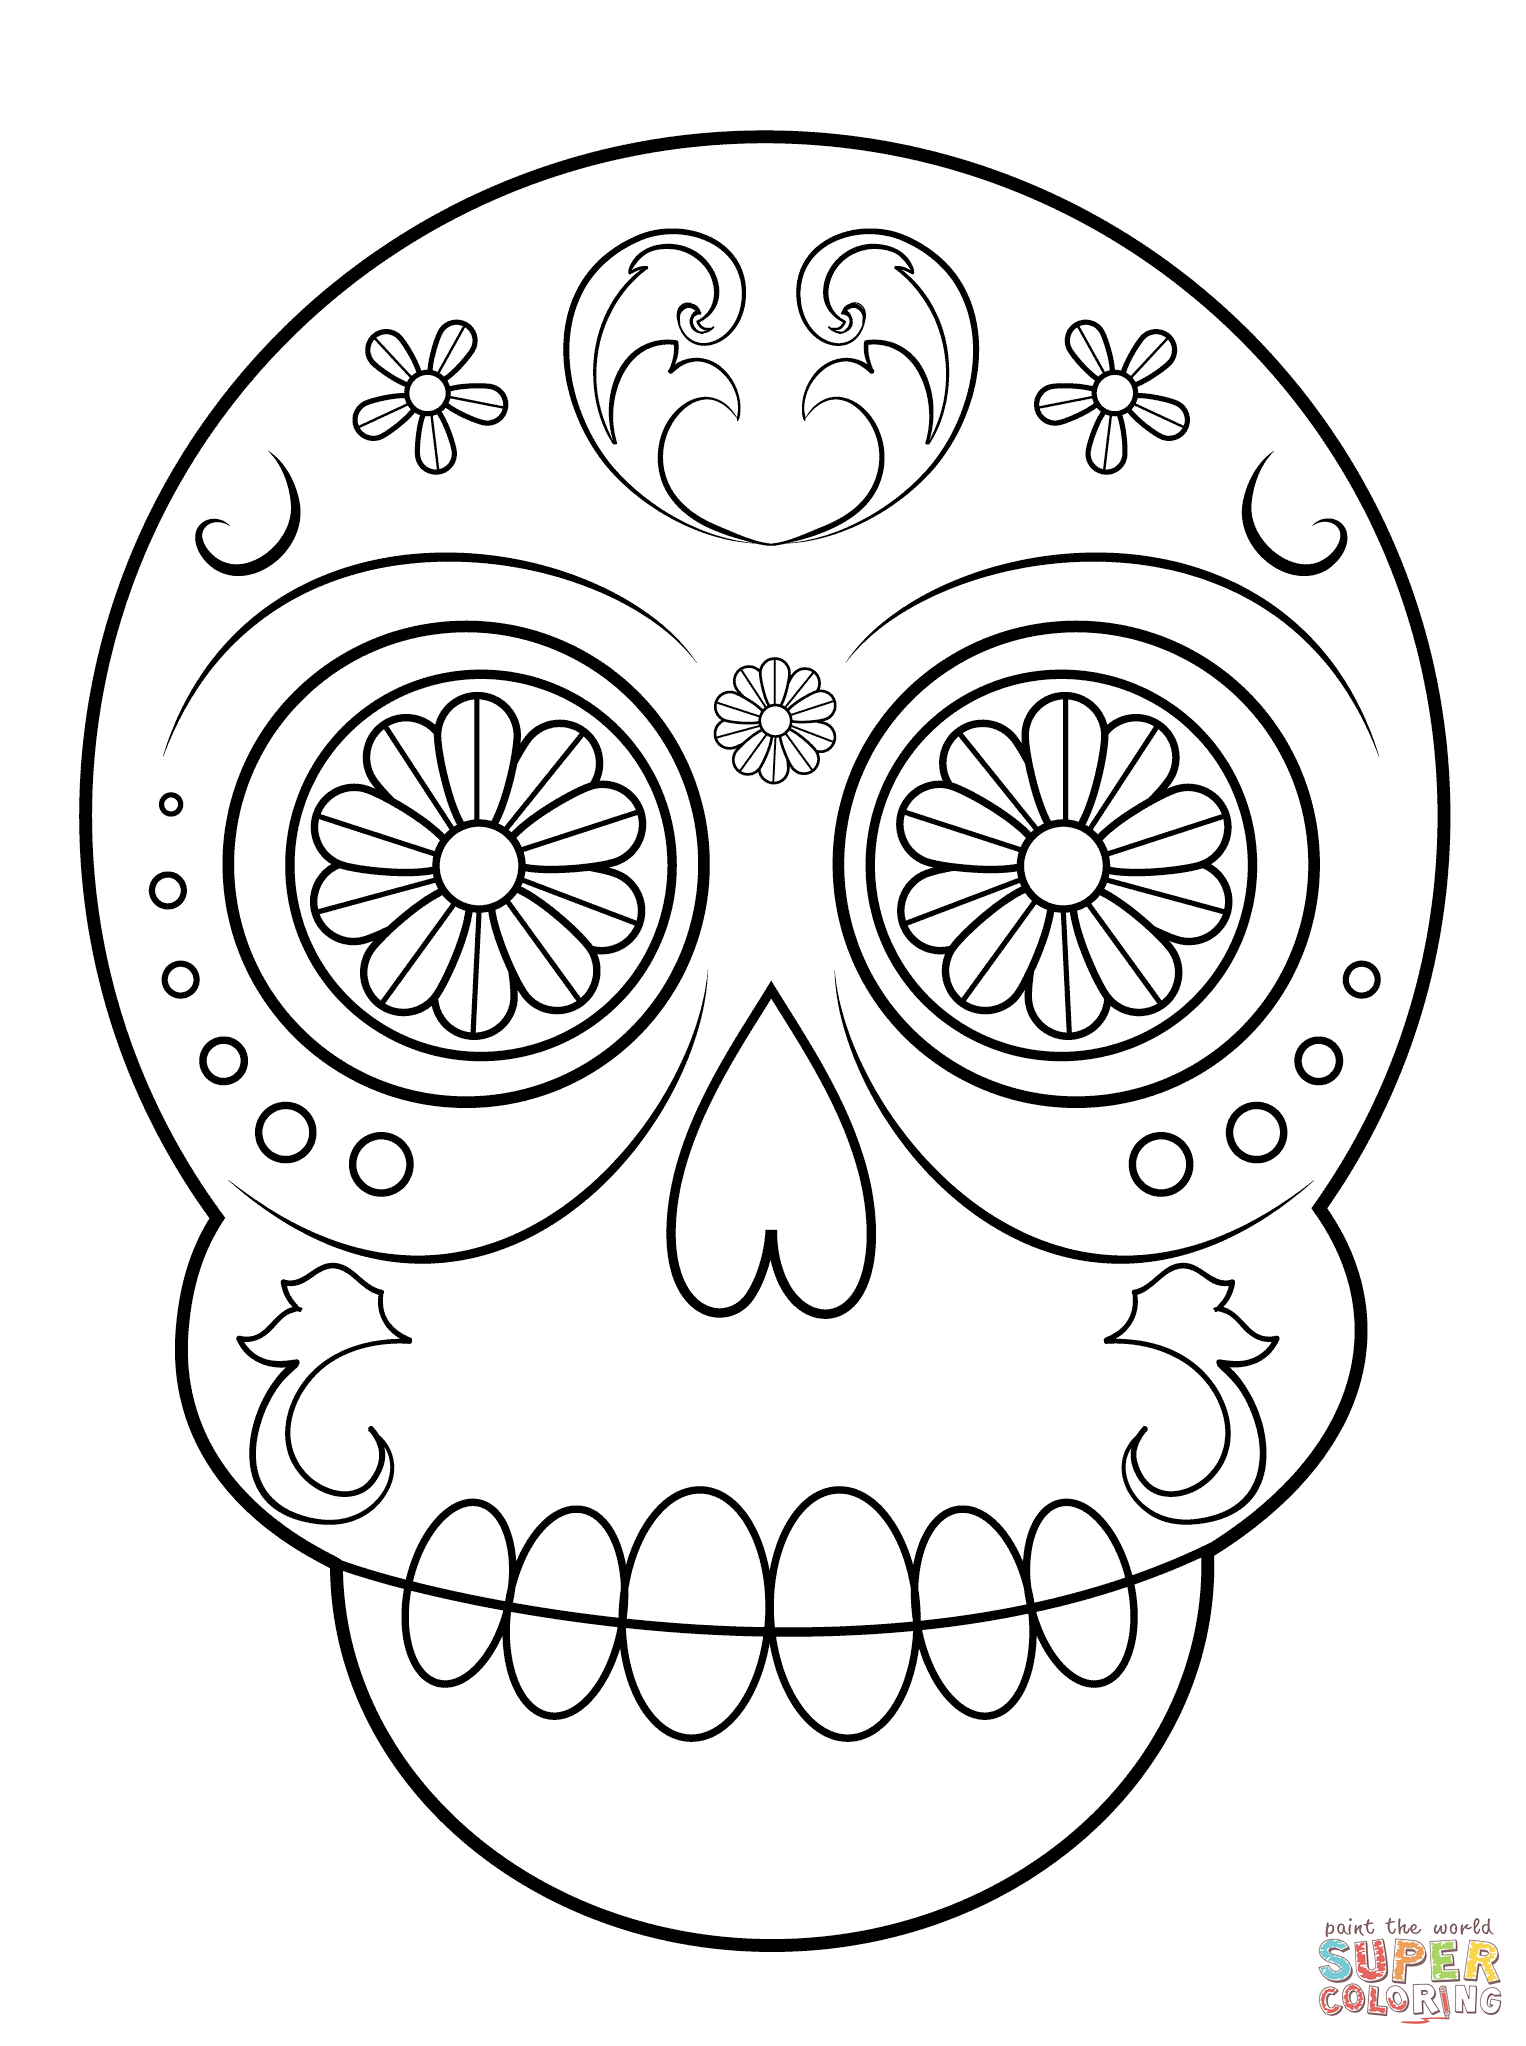 sugar skull template pin by teresa stevens brilliant on cricut gift ideas sugar skull template